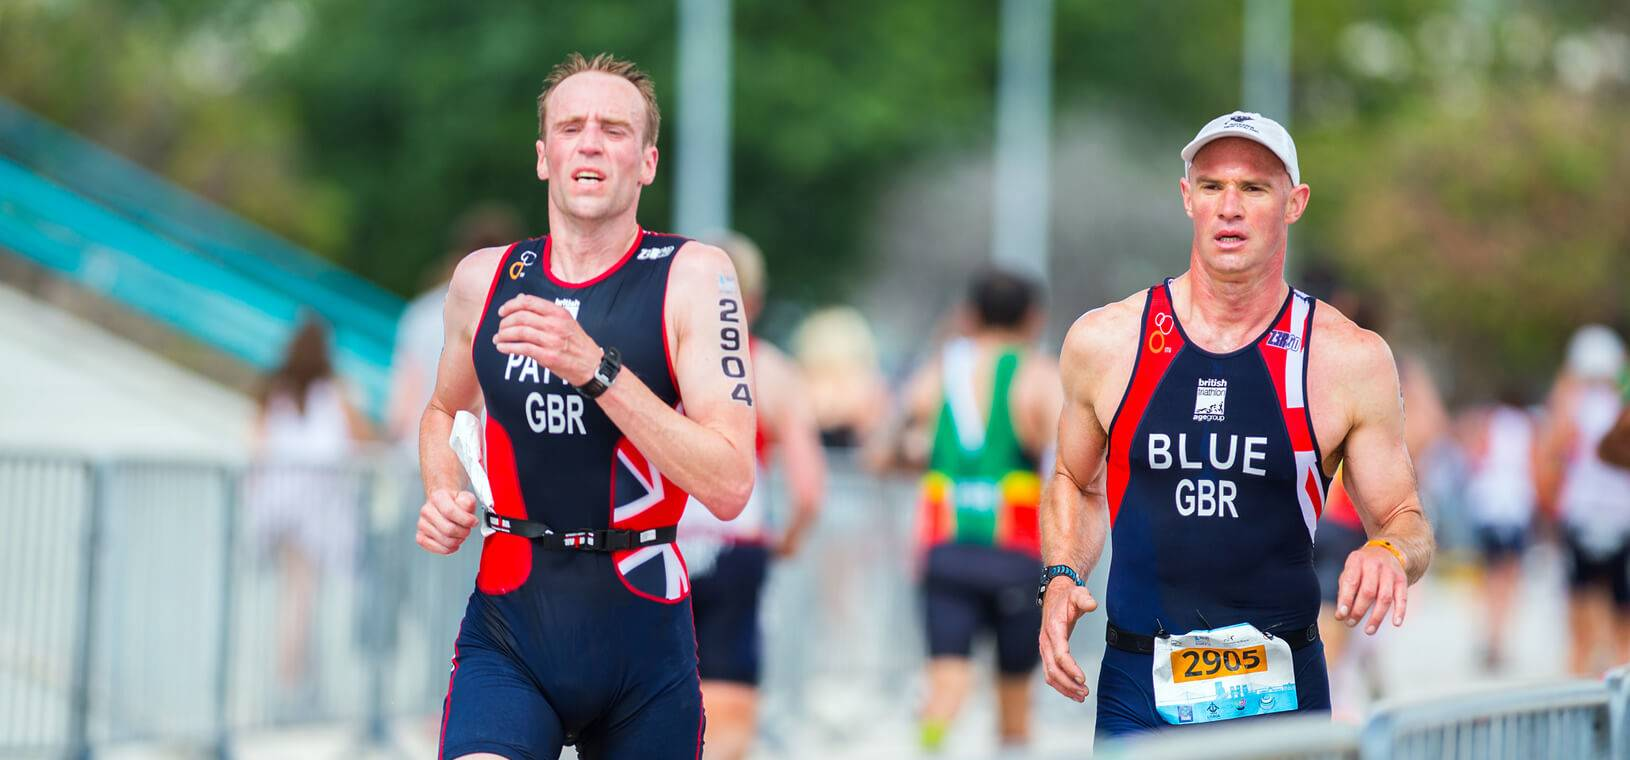 0aebeeace93 Great Britain s Long Distance Age-Group athletes capture a clutch of medals  in Poland – British Triathlon